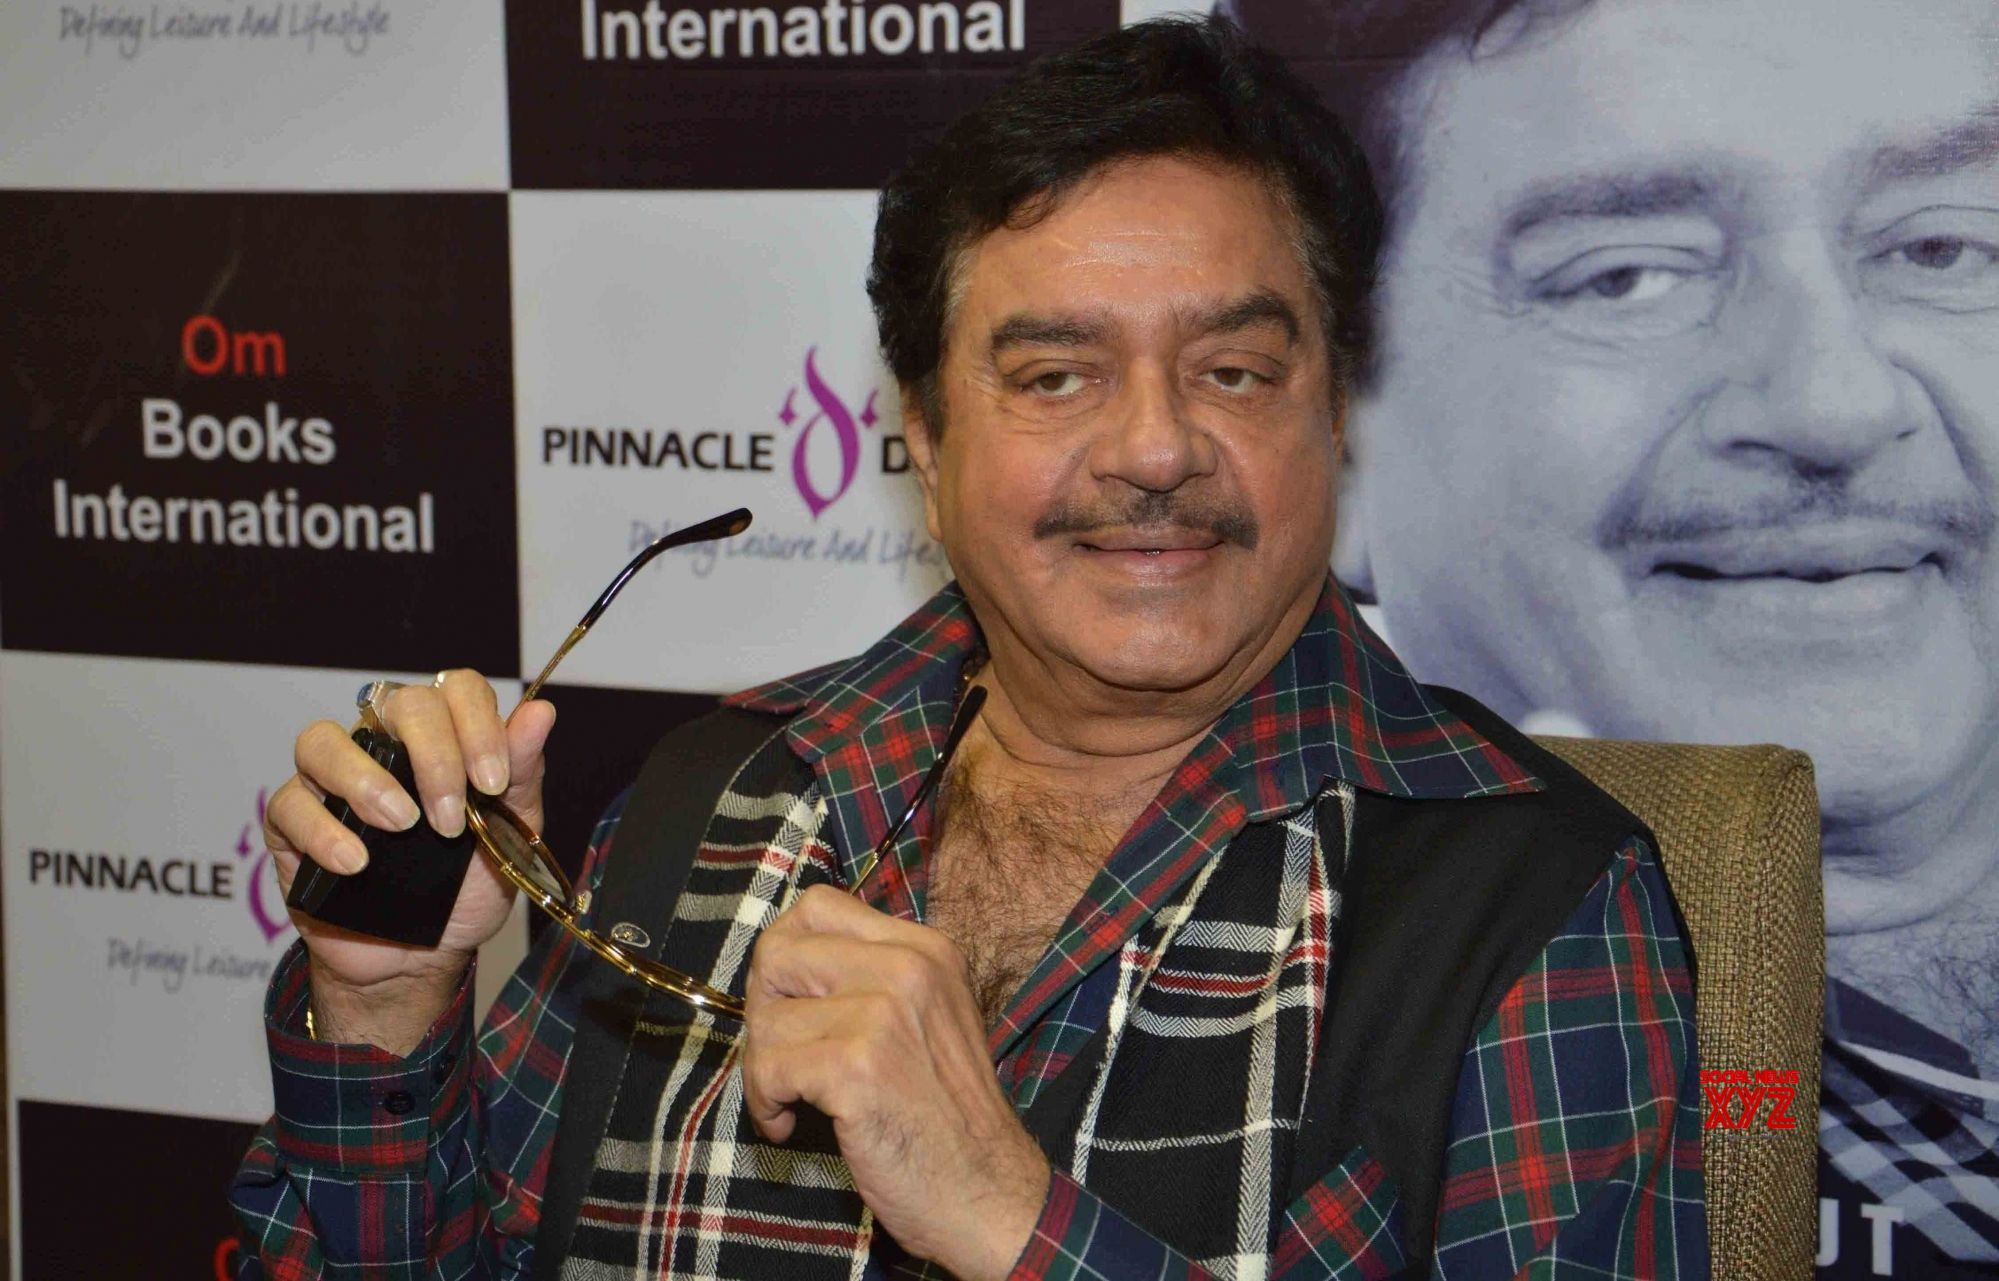 Those opposing women's empowerment will 'melt' soon: Shatrughan to Renuka